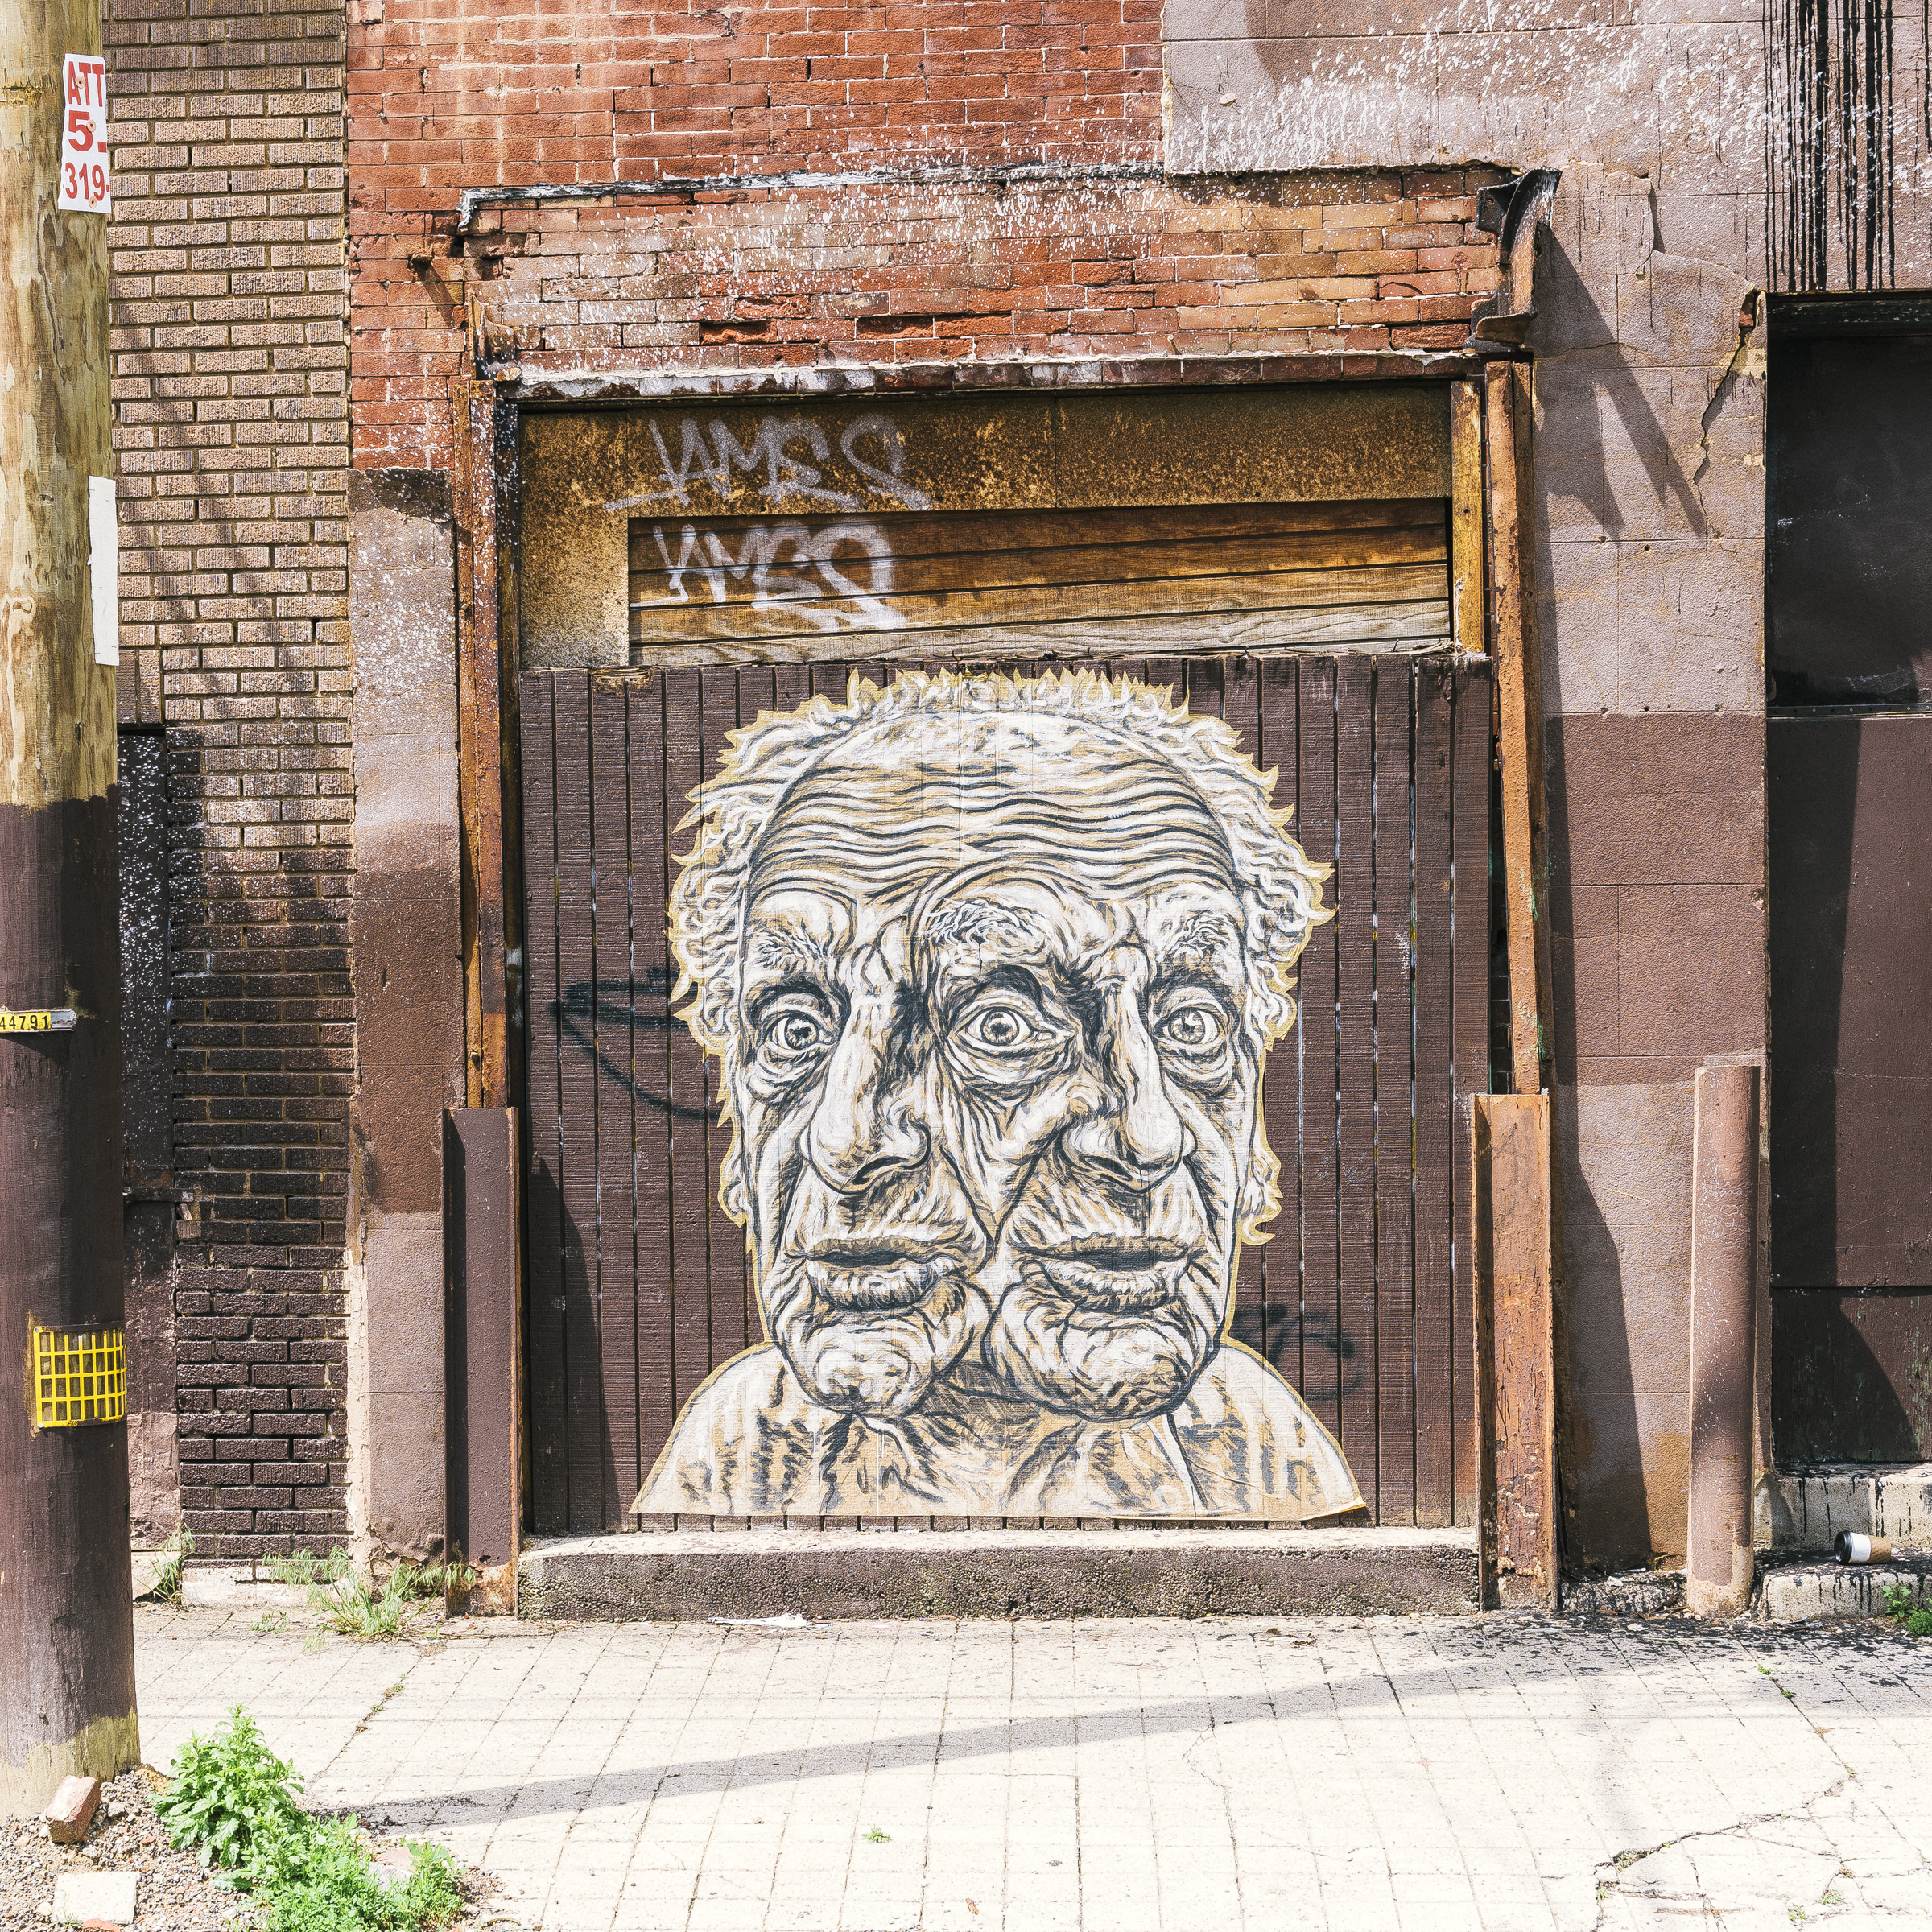 One of many local murals and public arts.